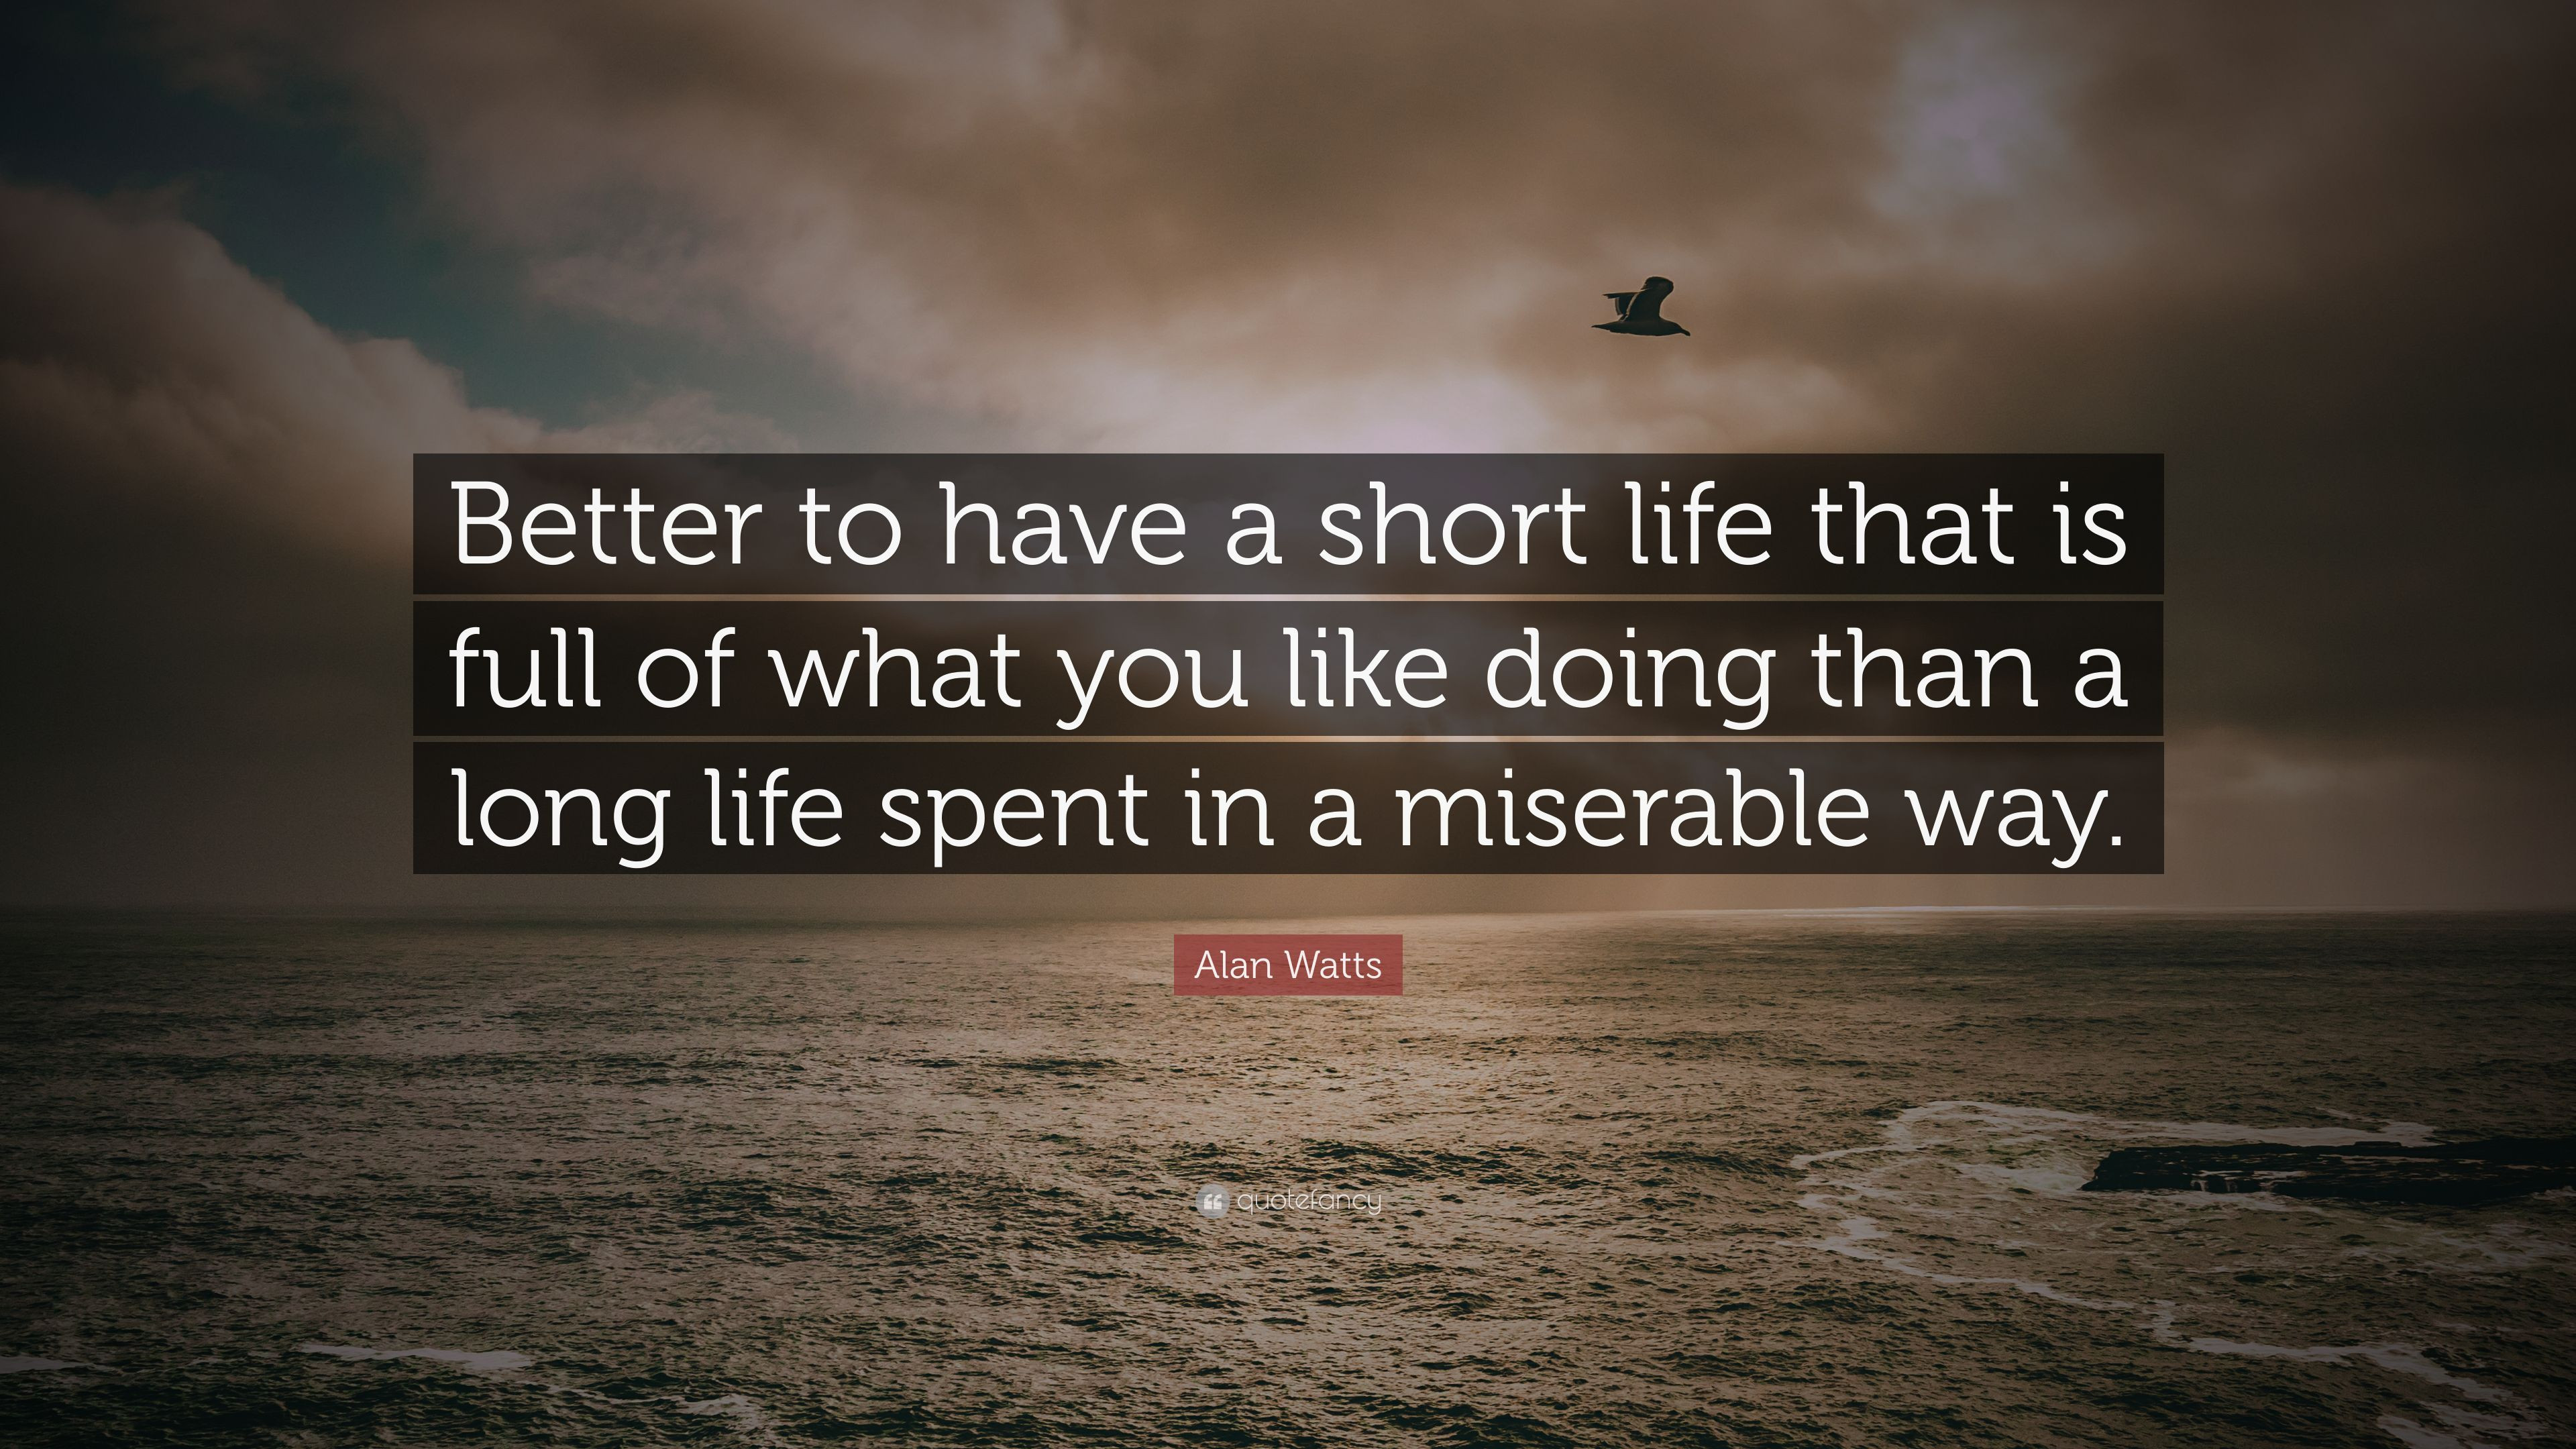 """Alan Watts Quotes About Life  Alan Watts Quote """"Better to have a short life that is"""